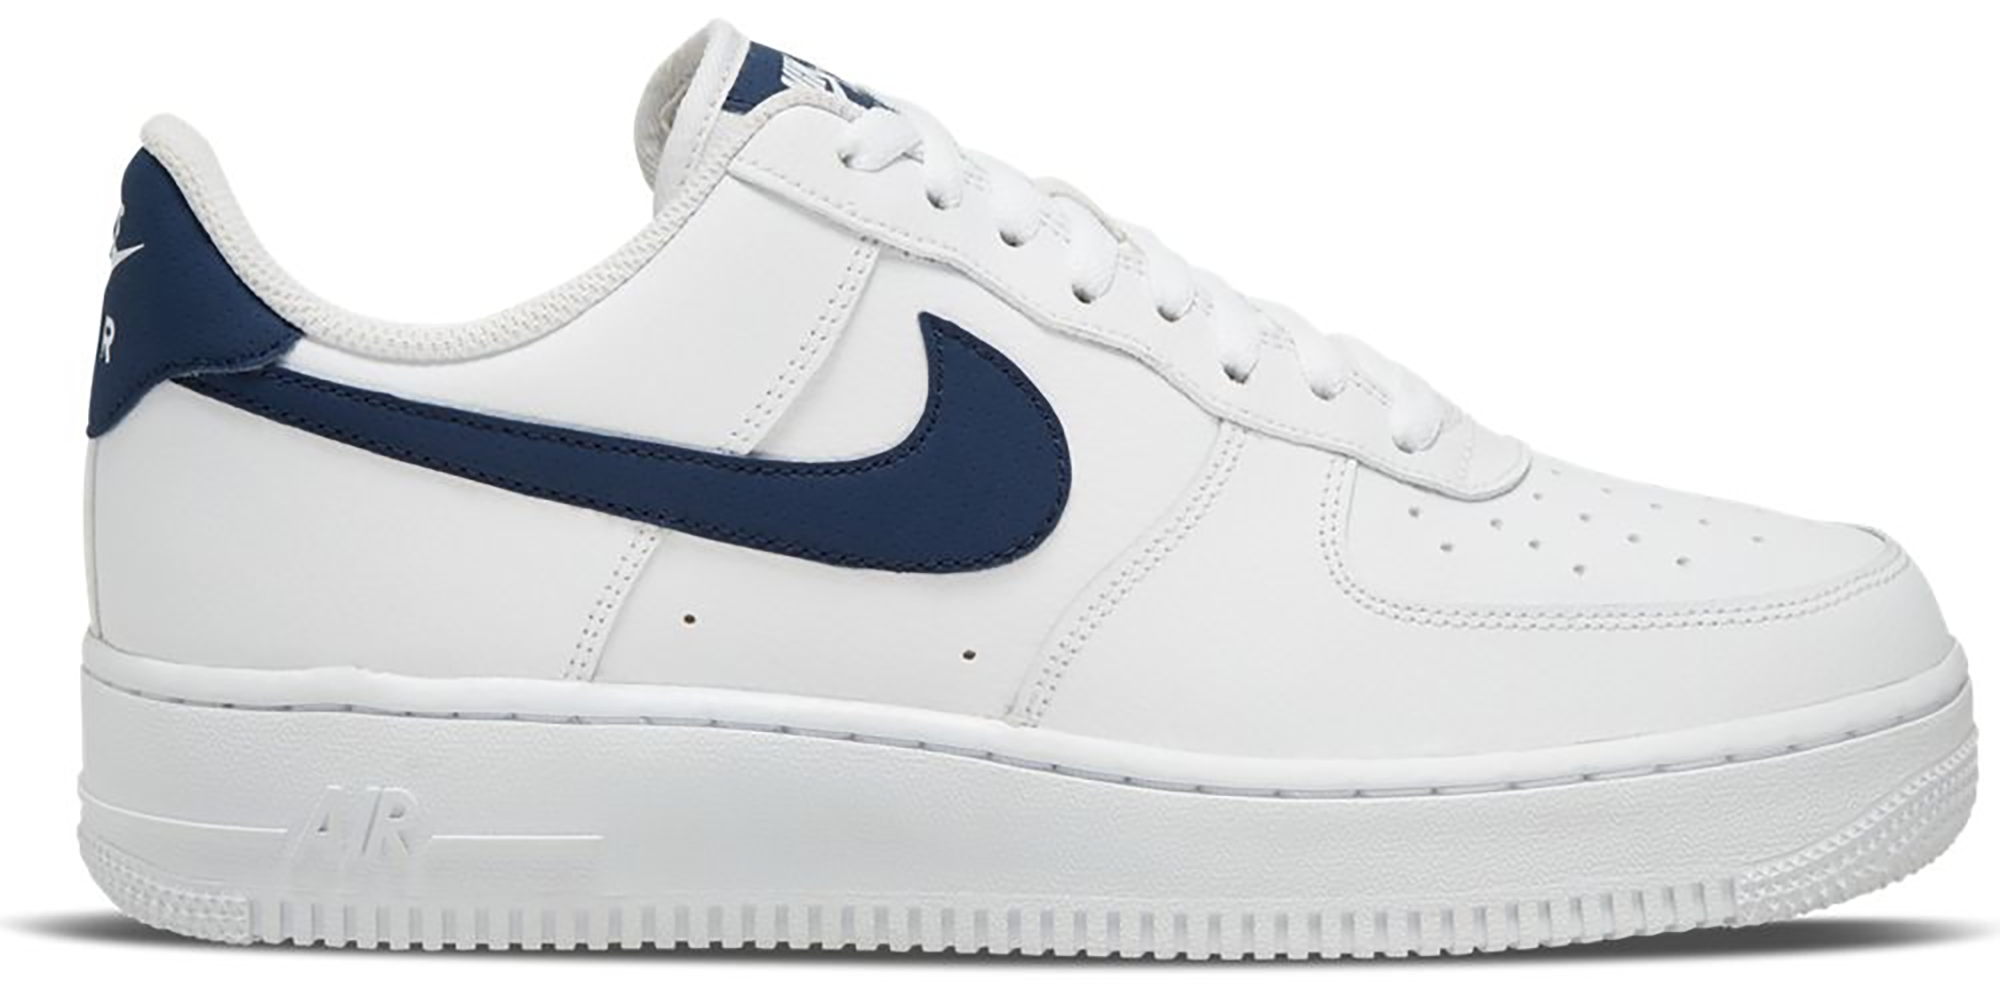 Nike Air Force 1 Low White Midnight